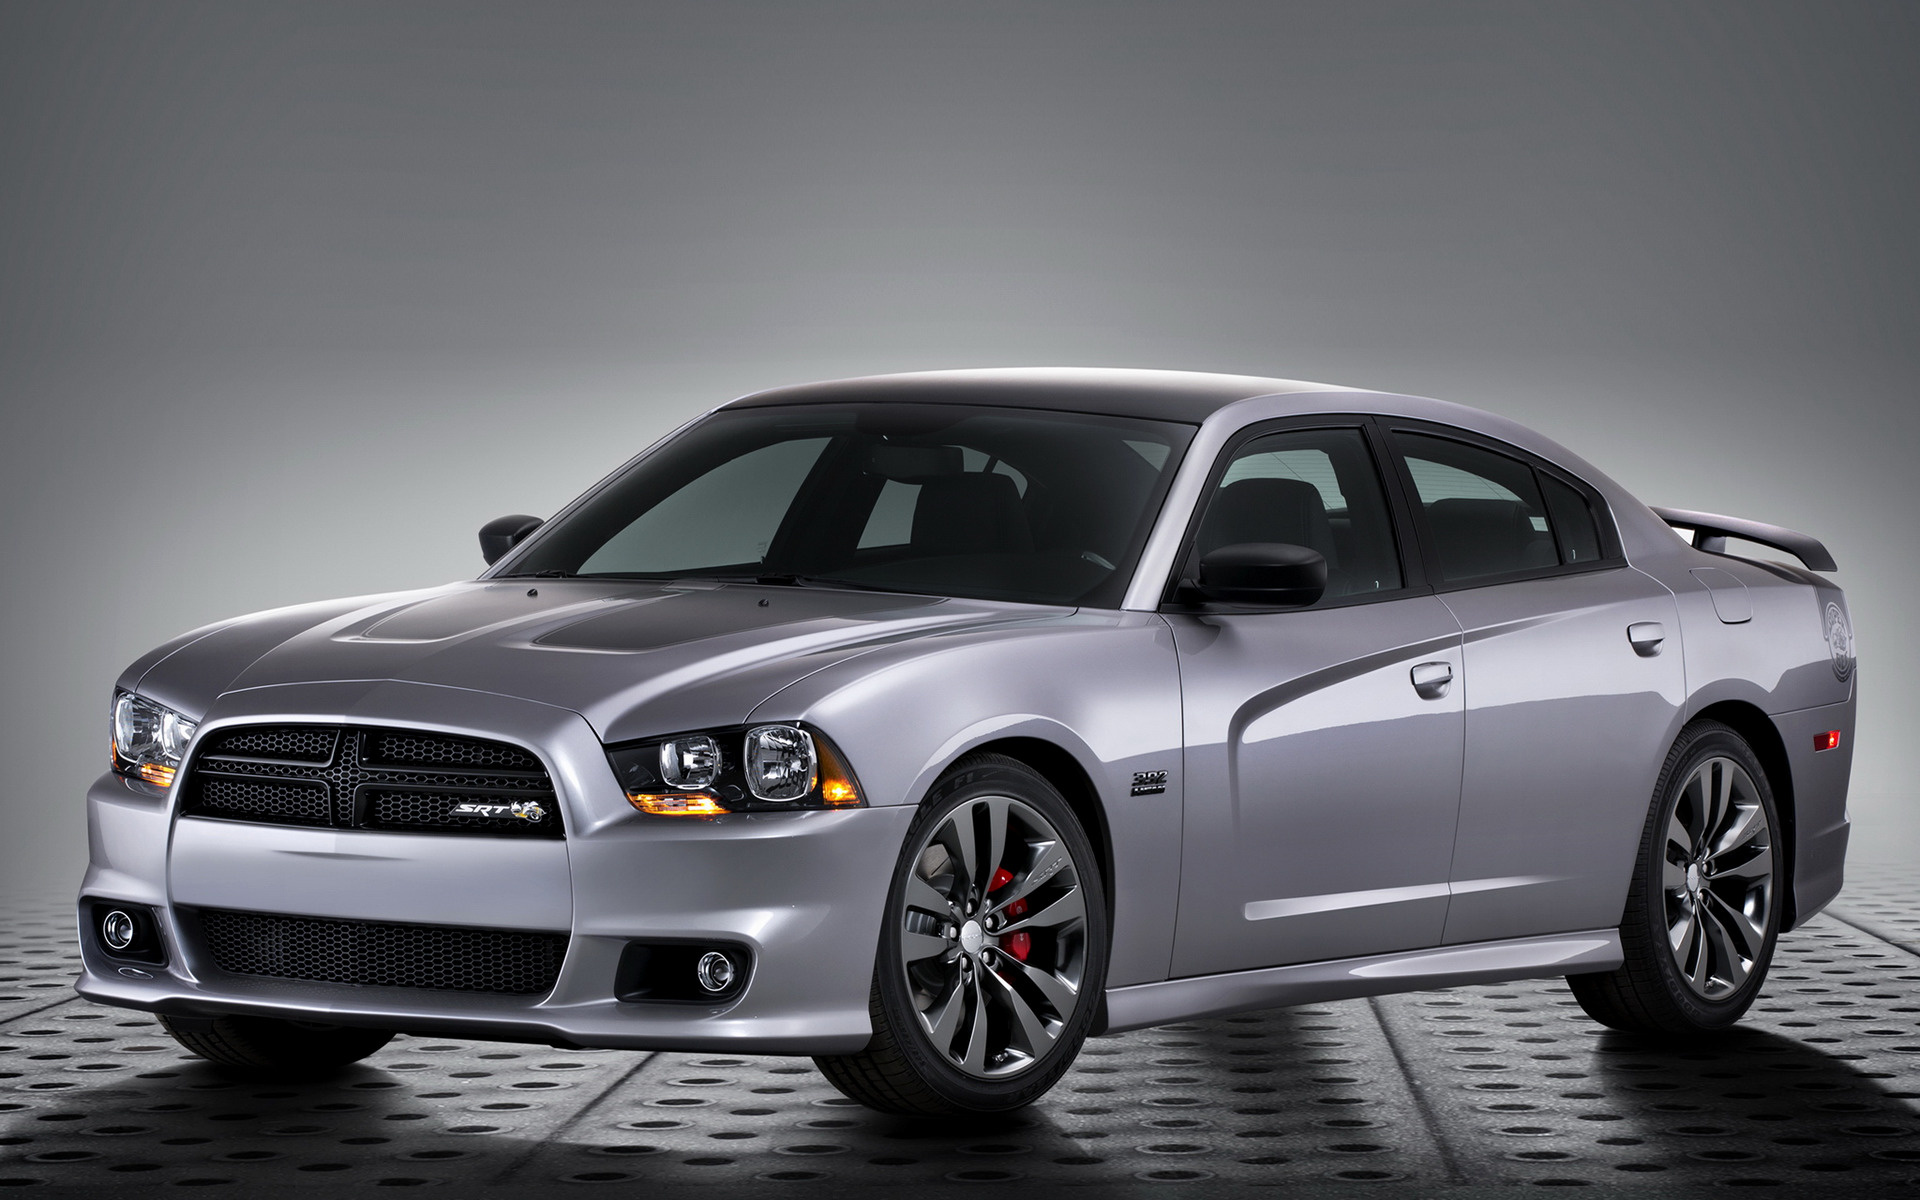 2014 Dodge Charger Srt8 Satin Vapor Wallpapers And Hd